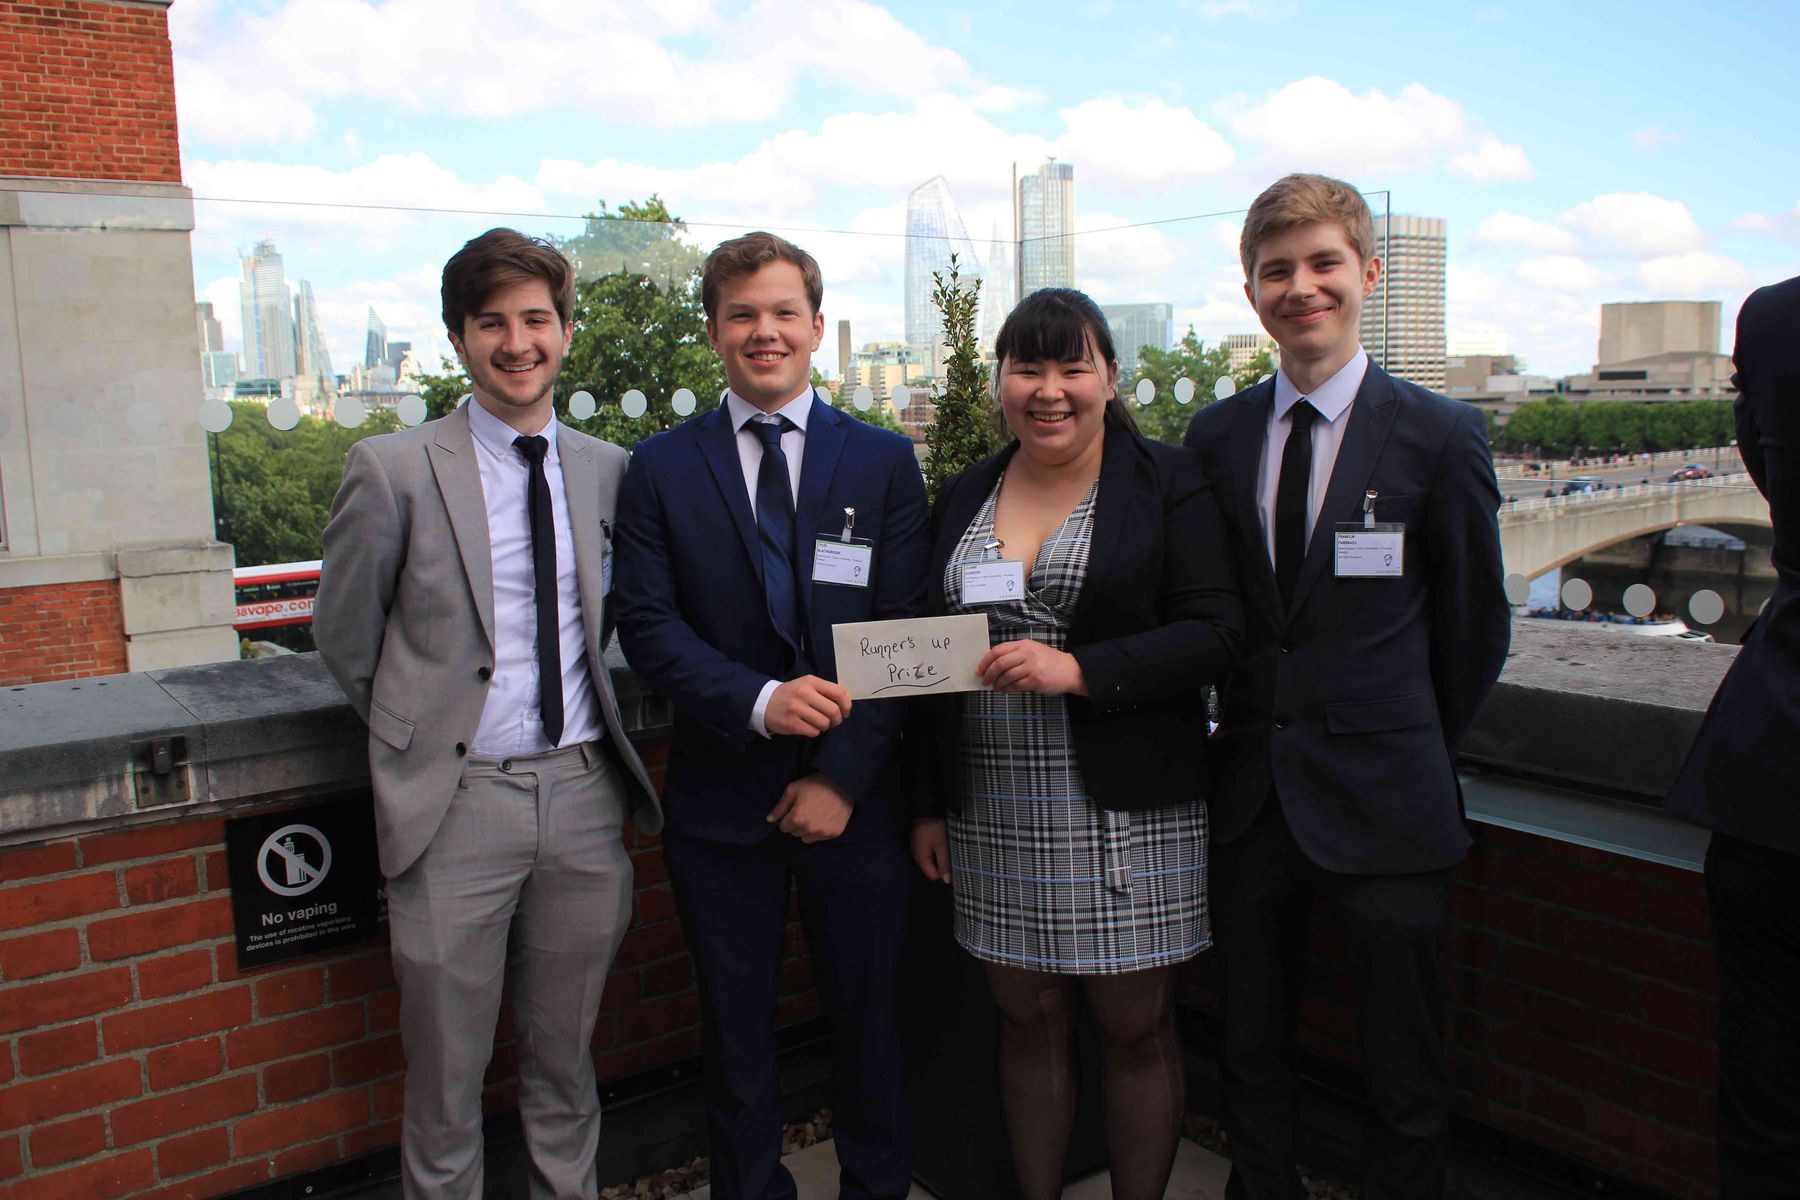 (L-R) Ashley Marlborough, Tyler Blackborough, Joanne Robinson, and Franklin Fairbrass at the Engineering Without Borders competition in London